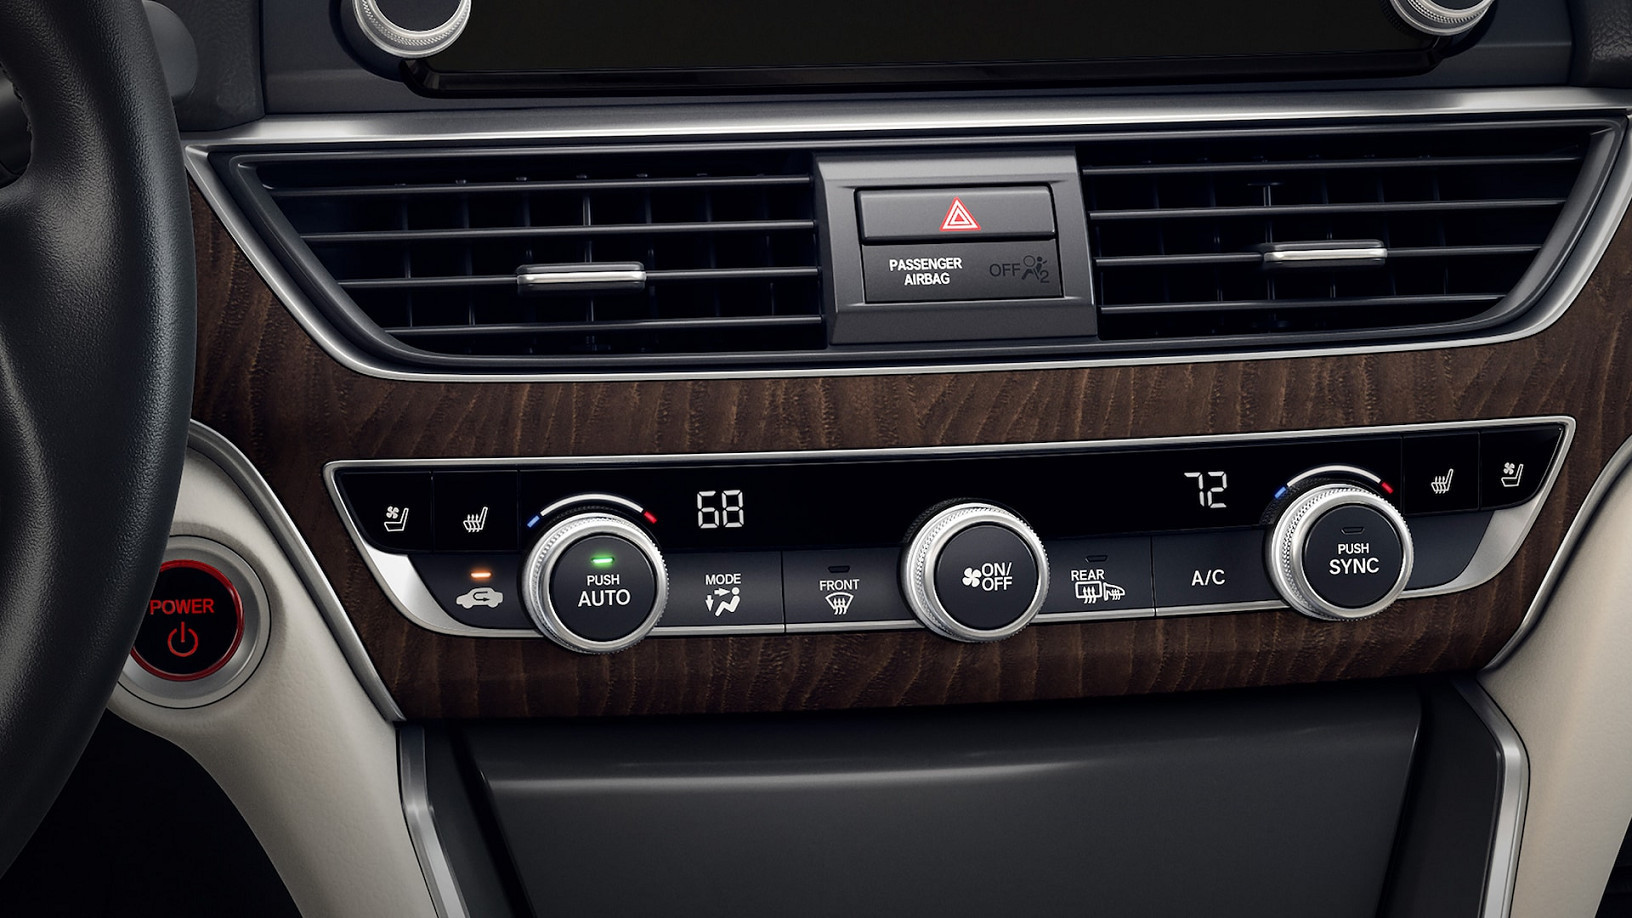 Standard Dual-Zone Climate Control in the 2020 Accord